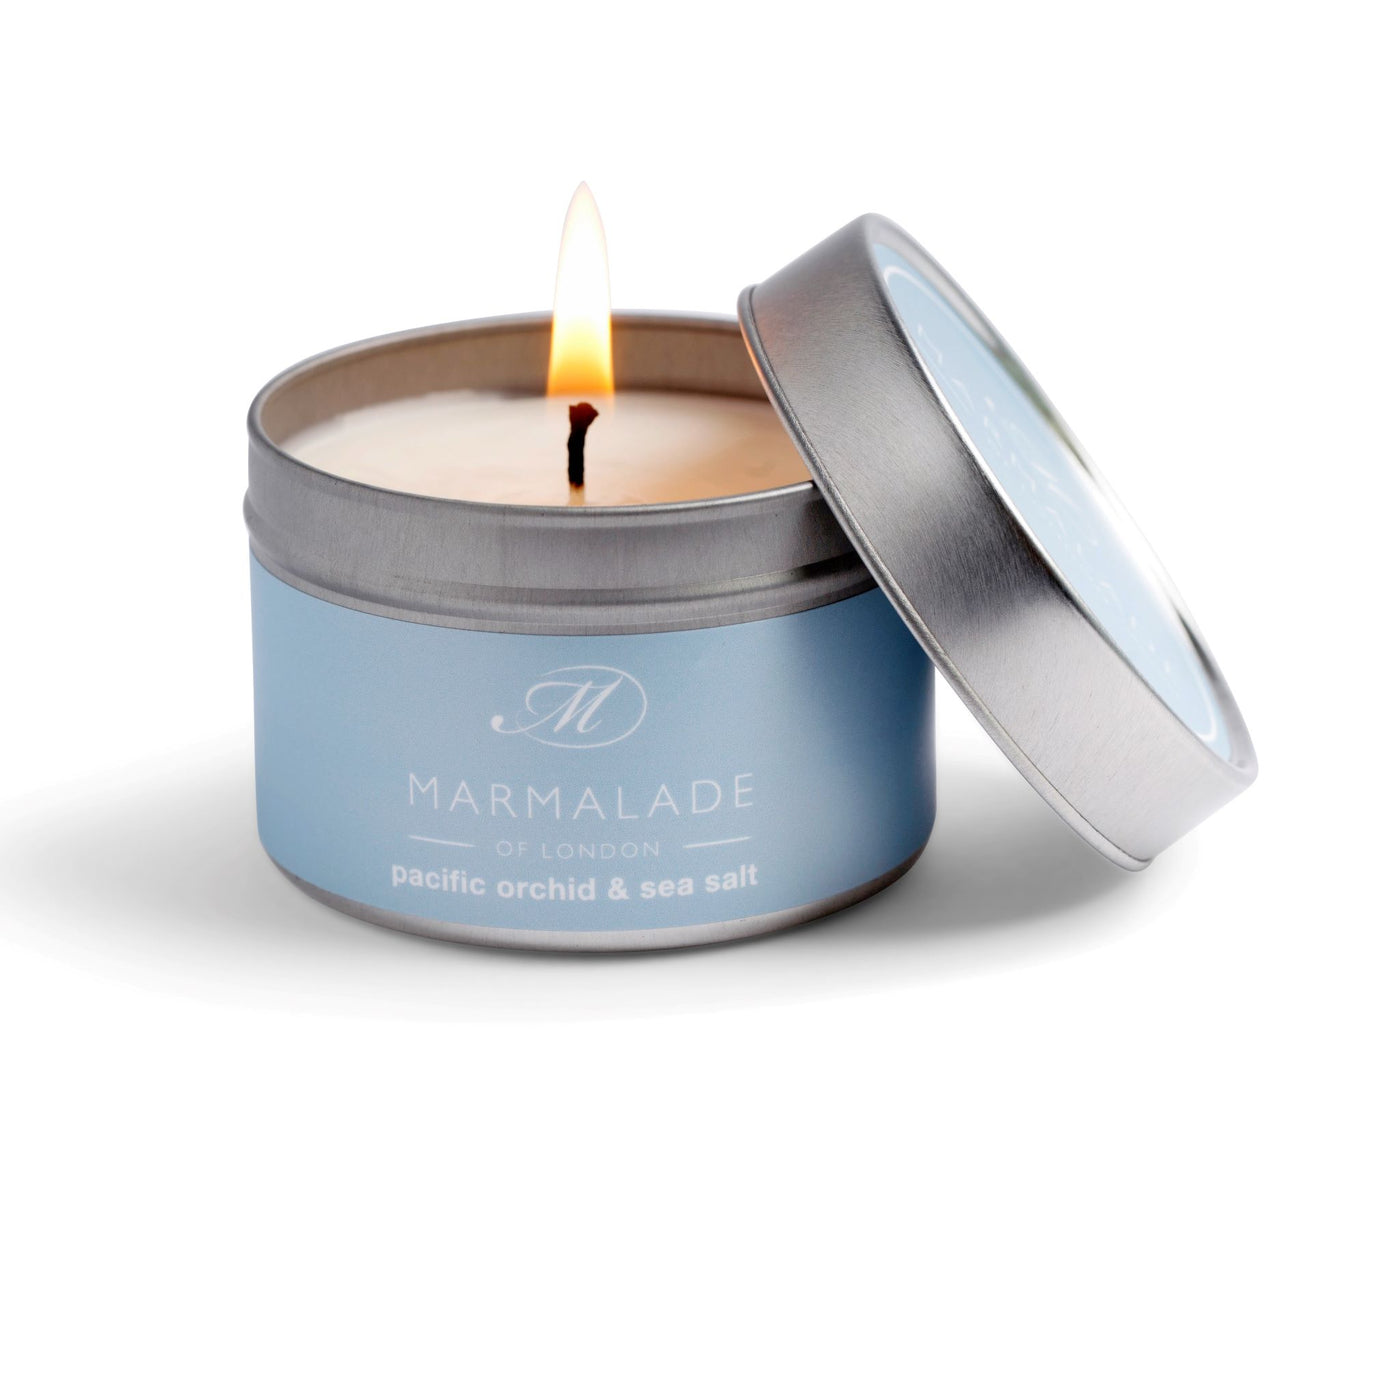 Pacific Orchid and Sea Salt small candle in a pale blue tin with lid.